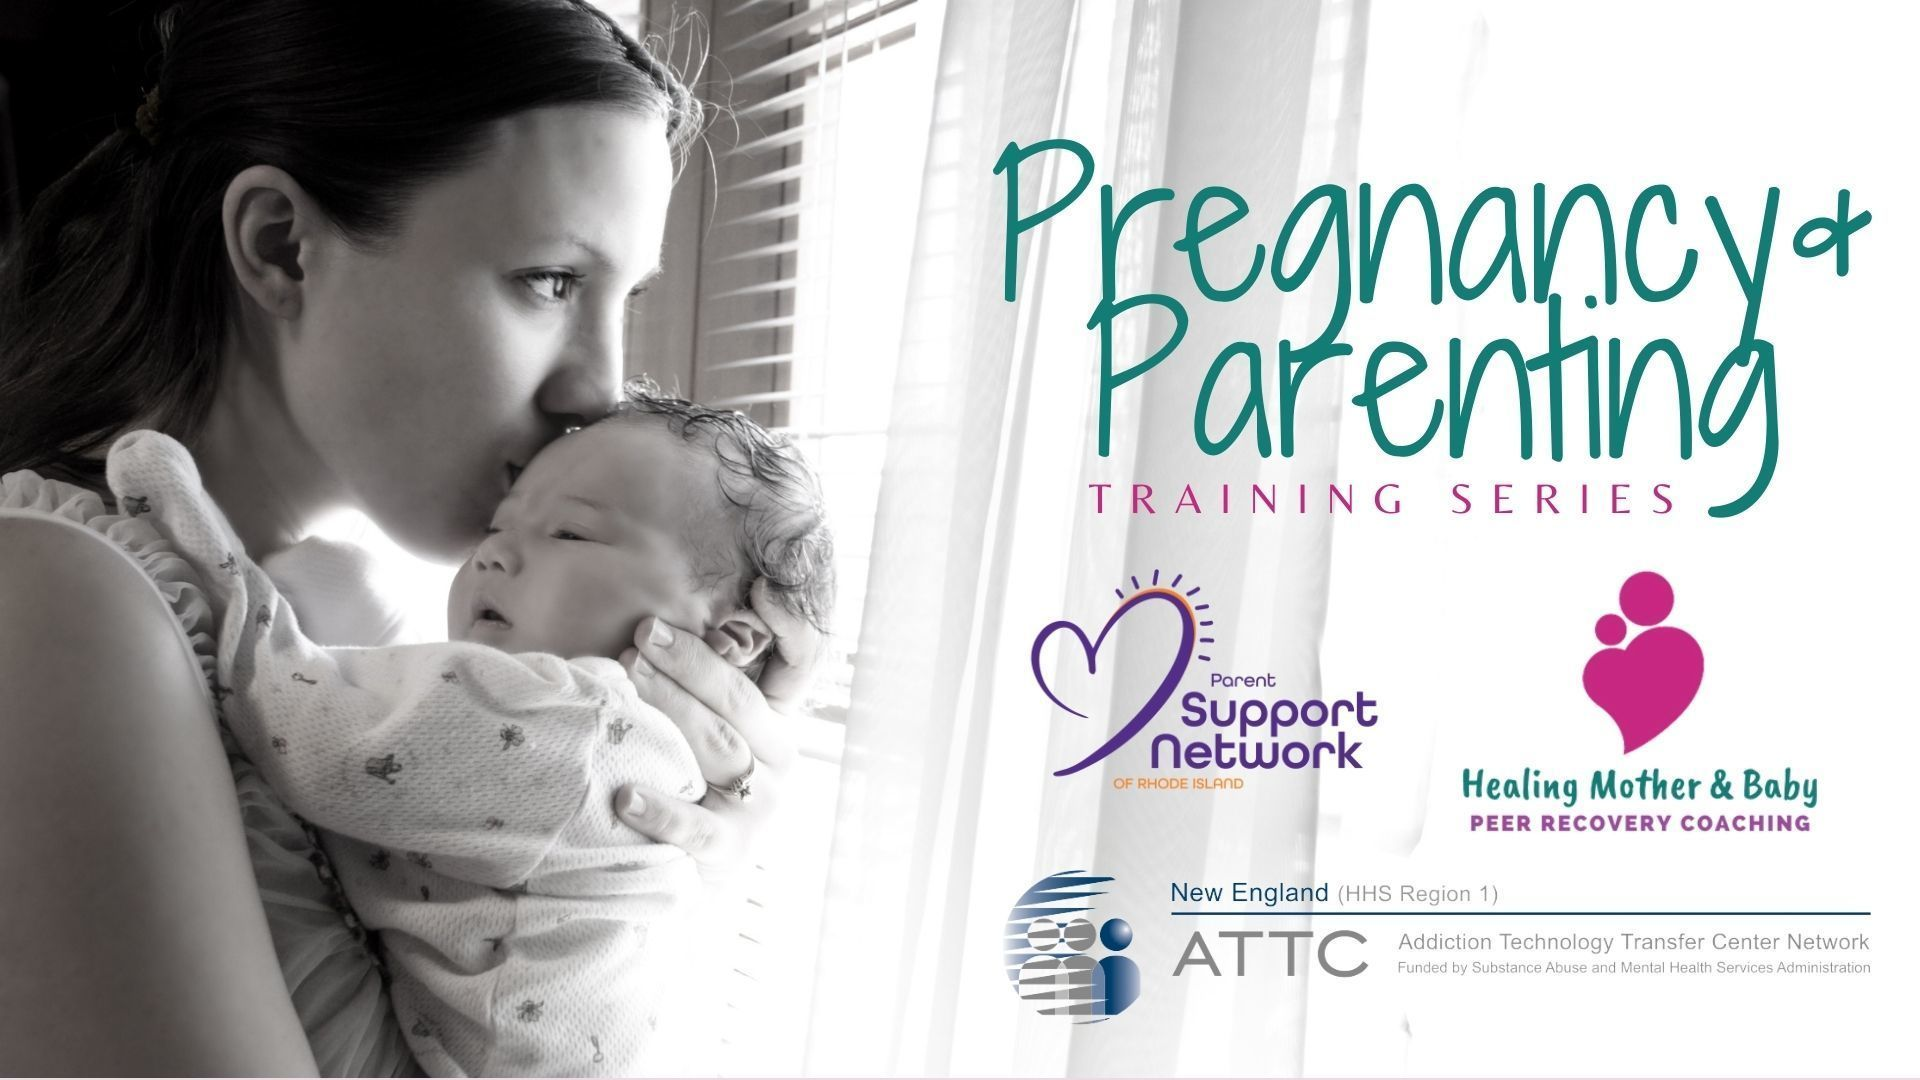 Training Series: Pregnancy & Parenting for Peer Recovery Support Specialists